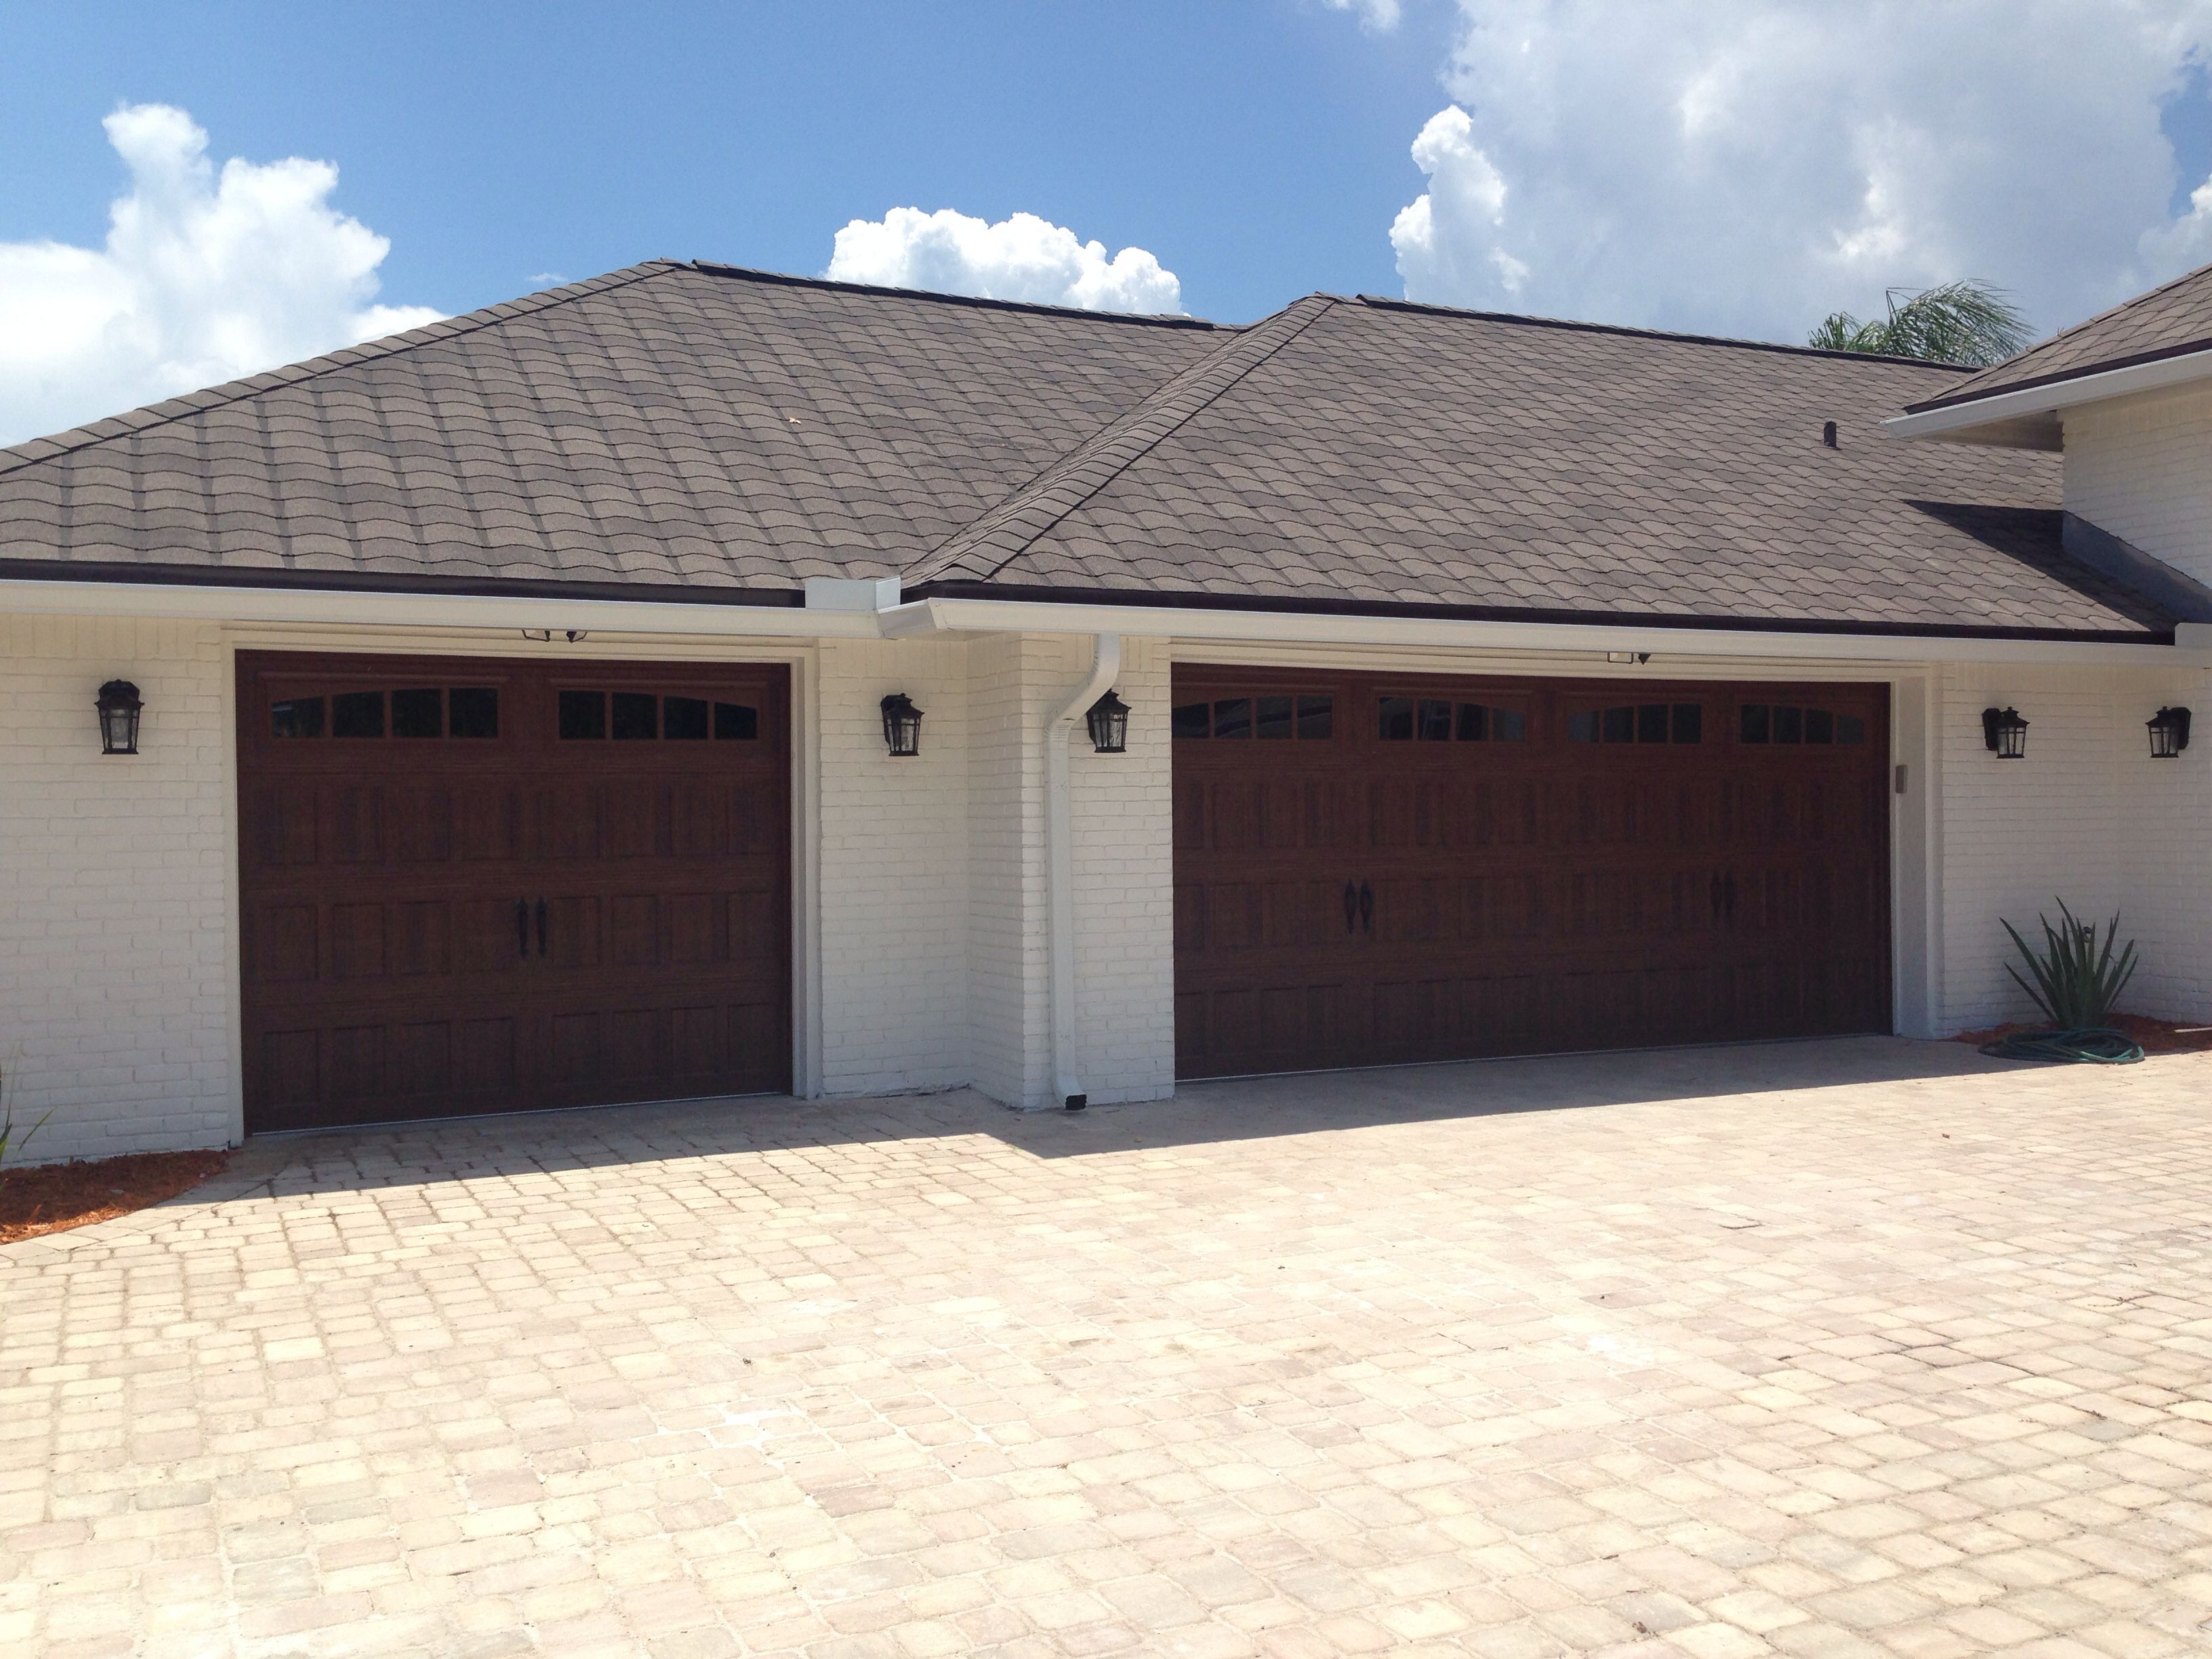 2448 #326099 Amarr Oak Summit 3000 Garage Door Installed In Ponte Vedra Beach FL  image Amar Garage Doors 37333264